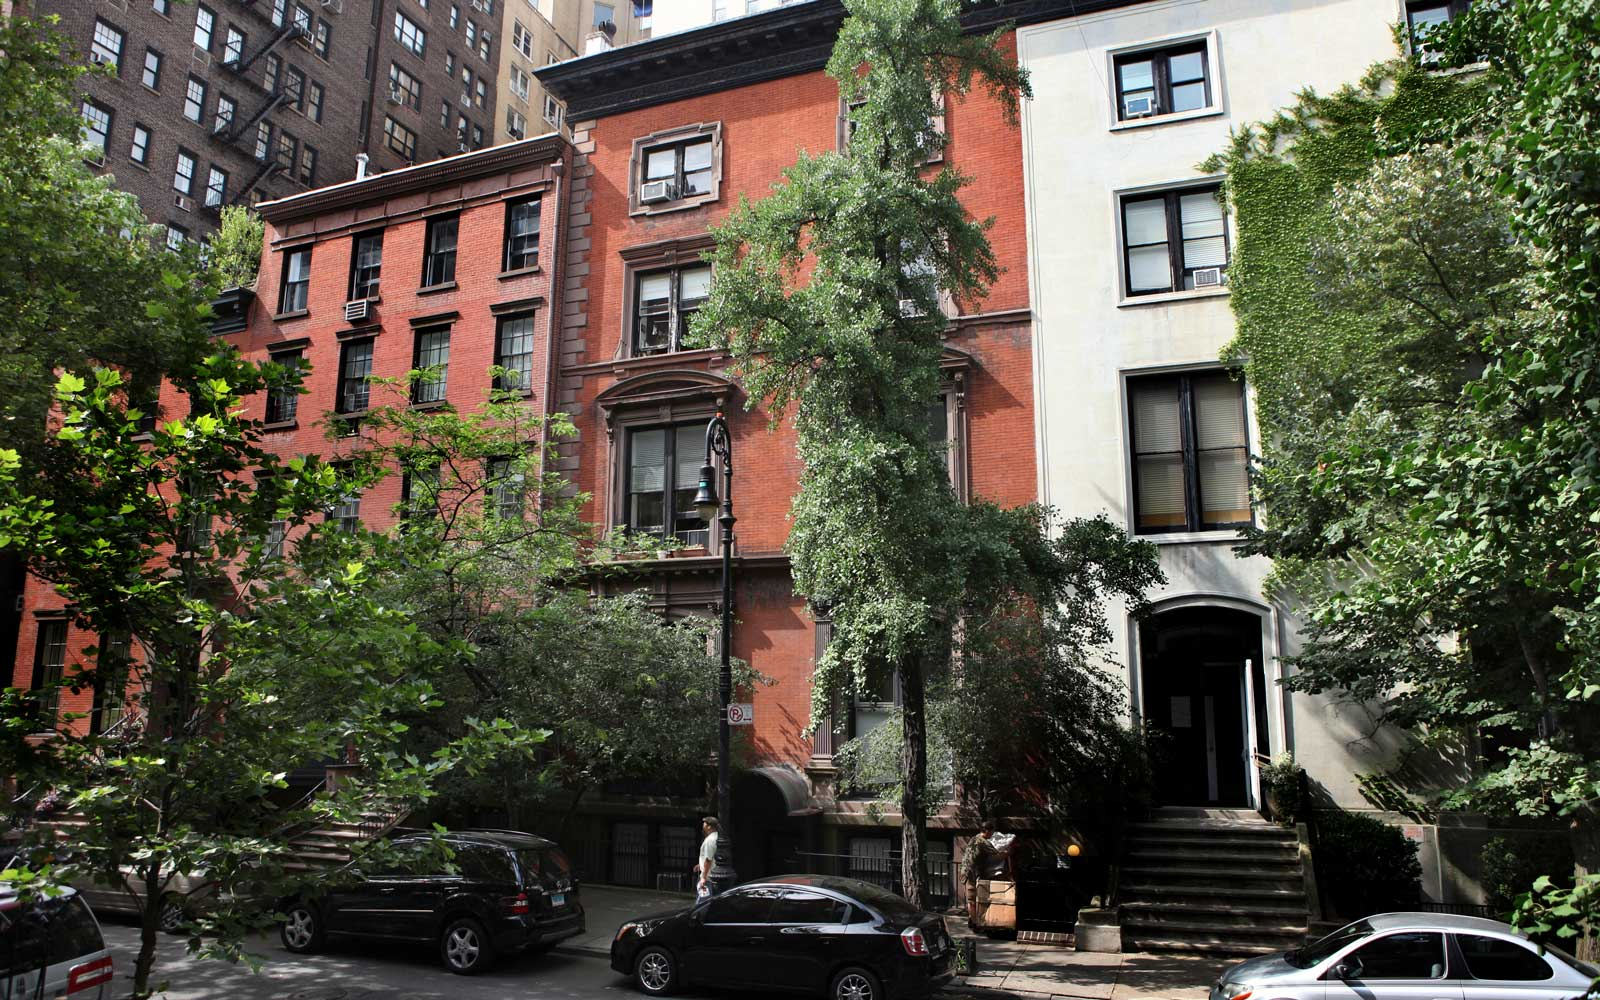 The red building in the center is 14 West 10th Street in Greenwich Village, where Mark Twain lived in 1900 to 1901, in New York.